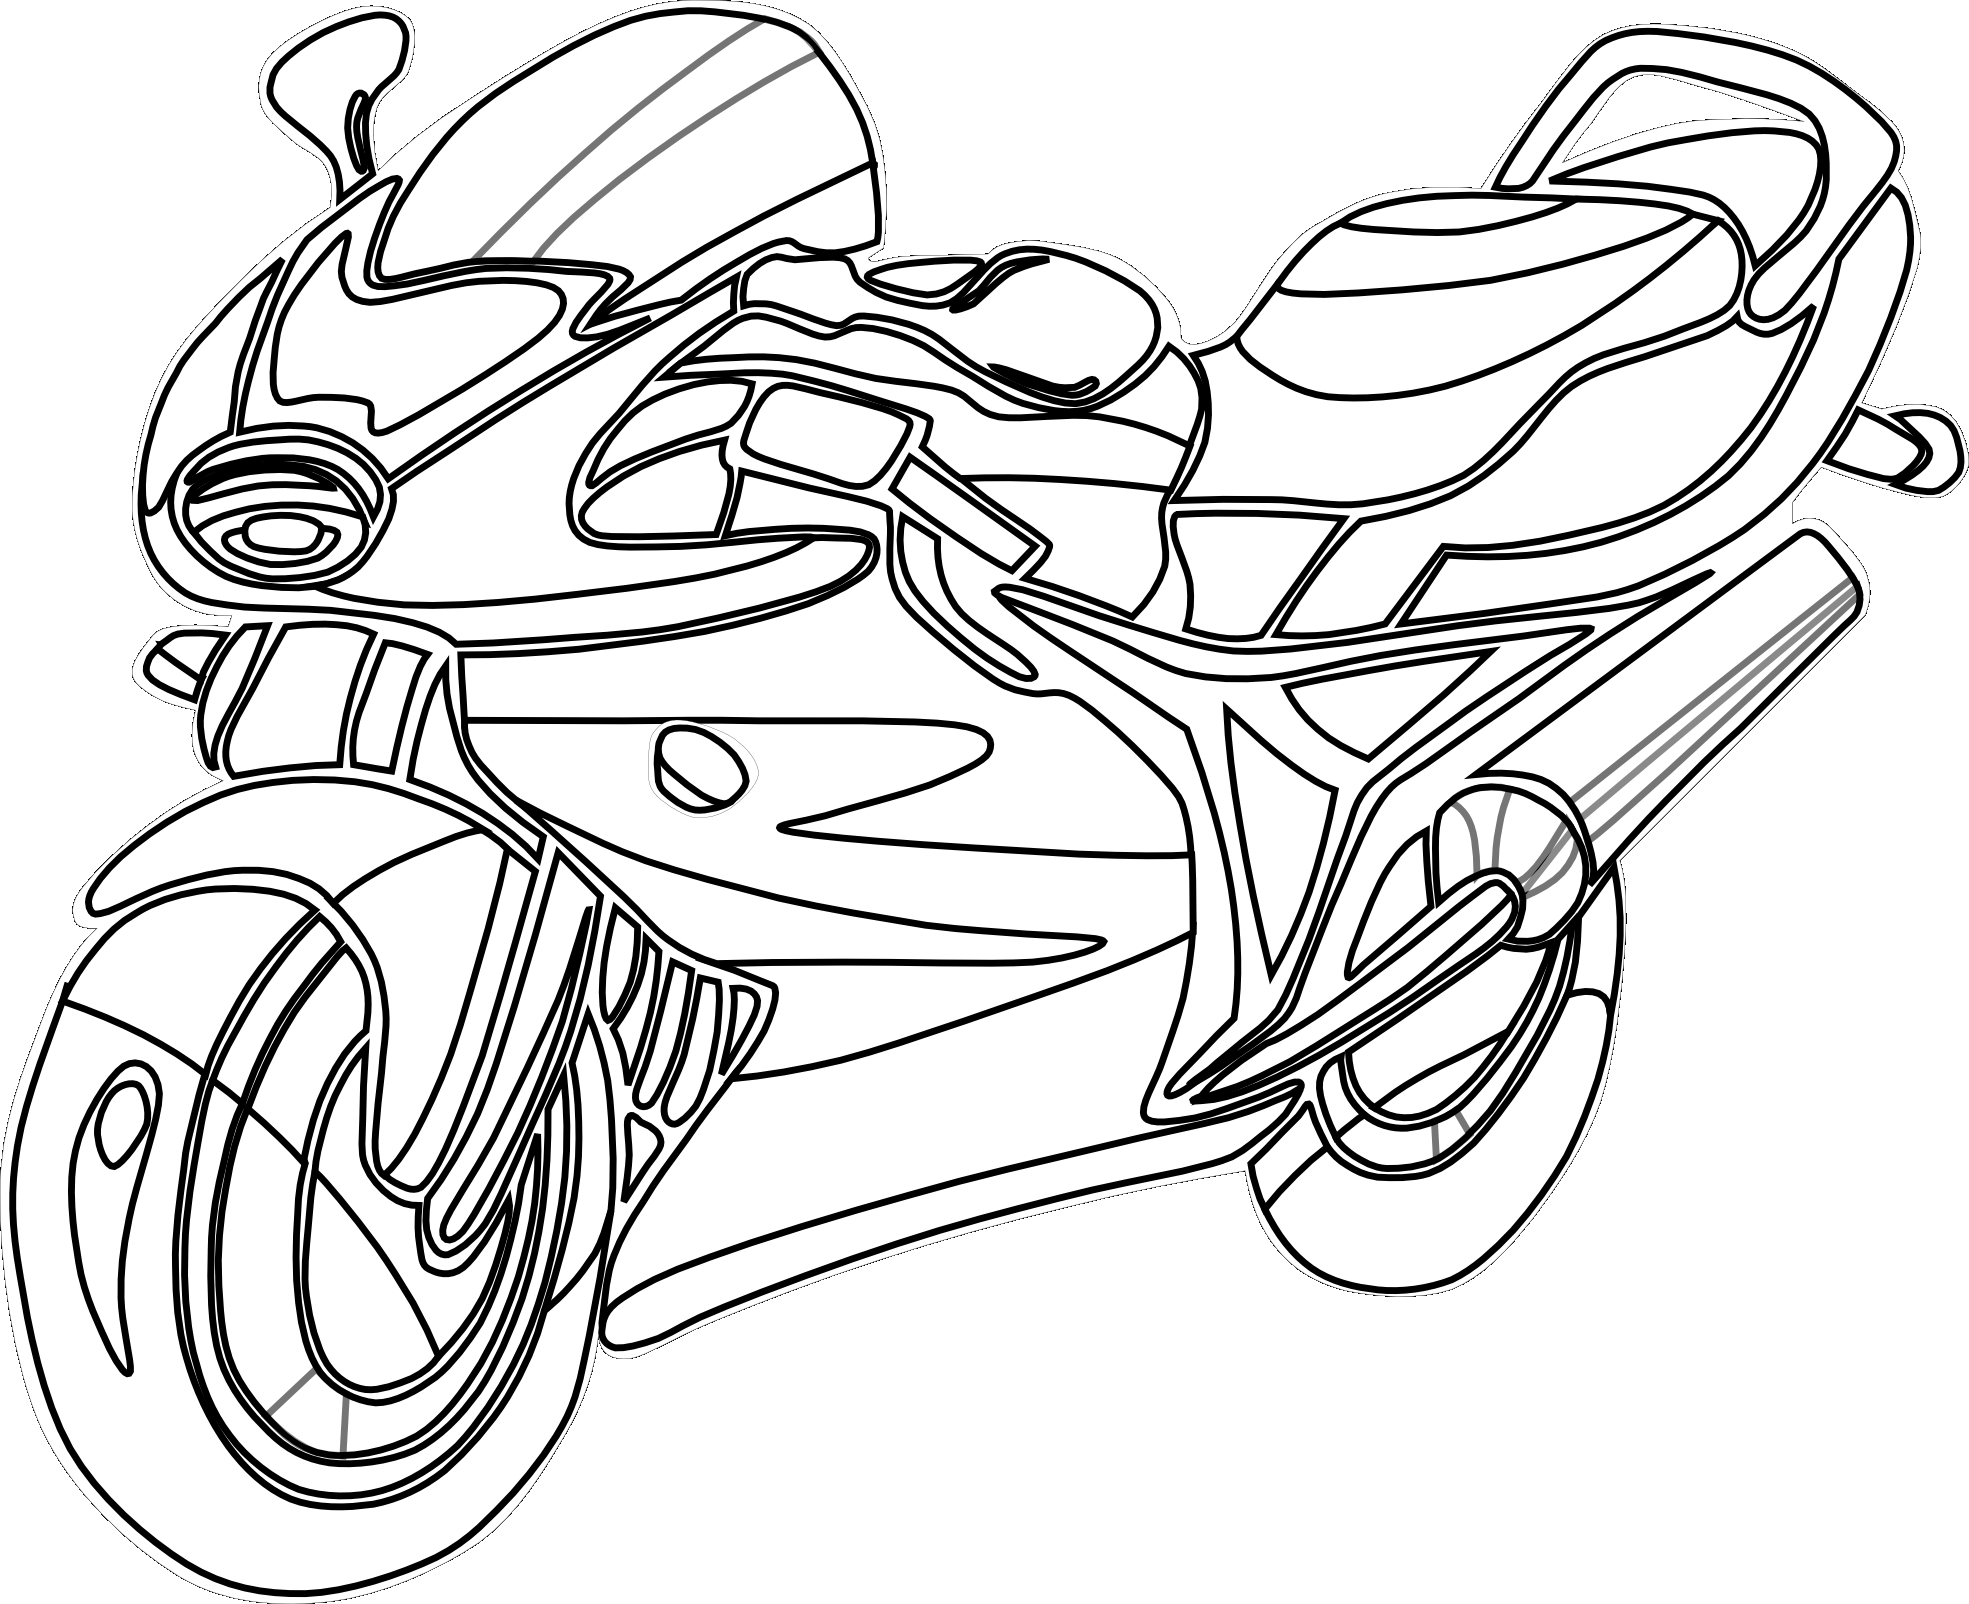 1969x1604 Motorcycle Coloring Pages To Print Free Coloring Sheets